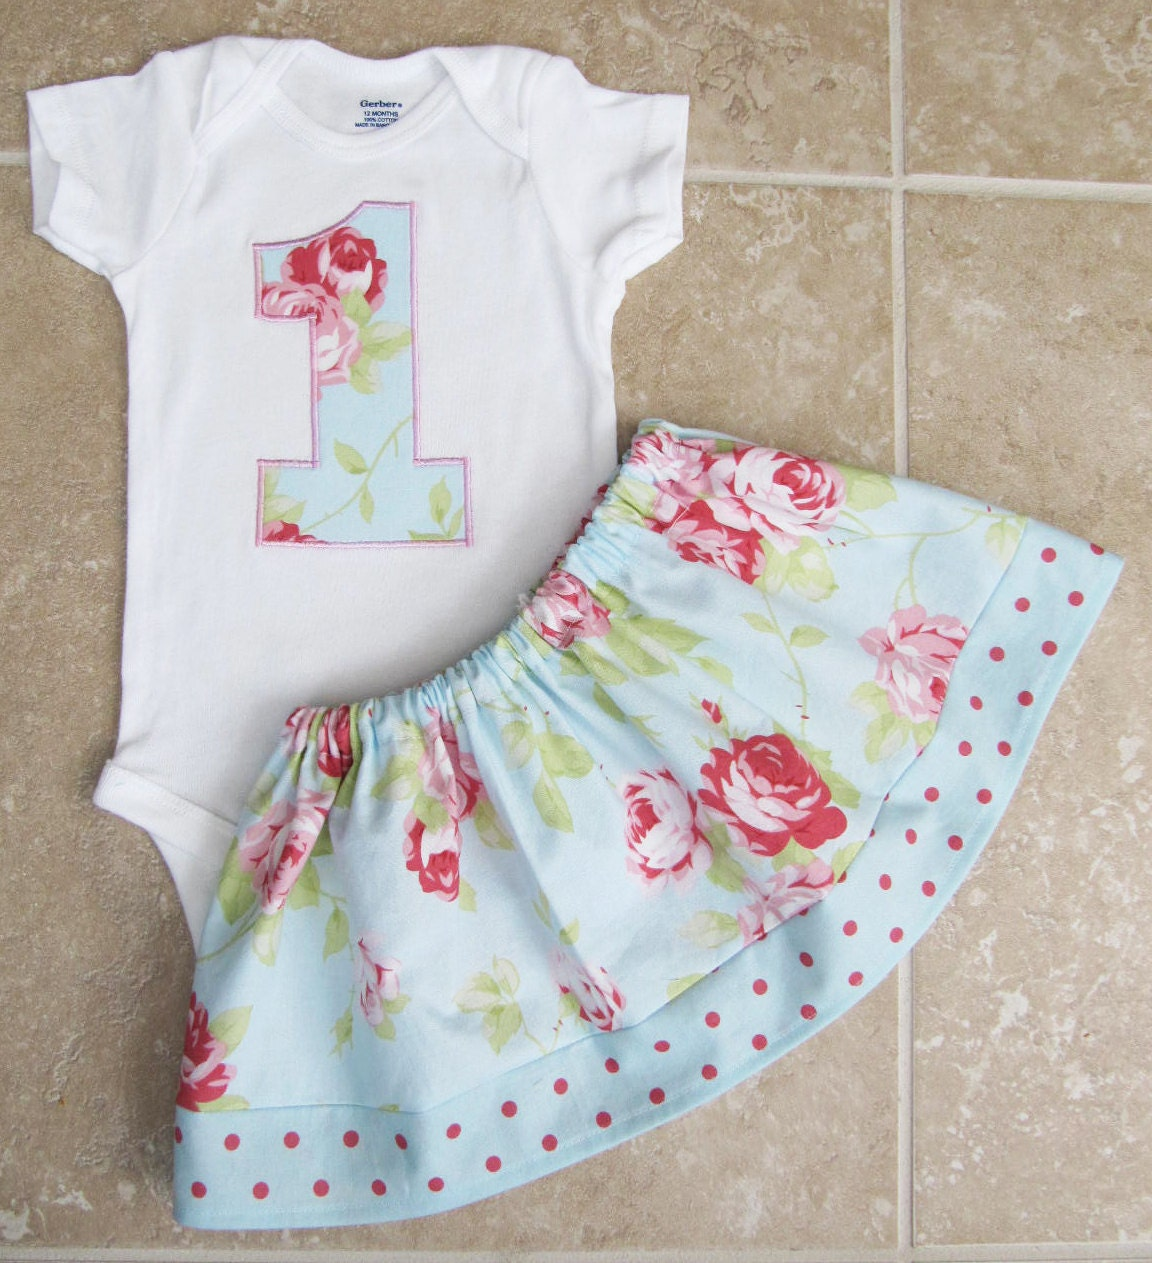 Shabby chic first birthday outfit in blue roses by noellebydesign - Shabby chic outfit ideas ...